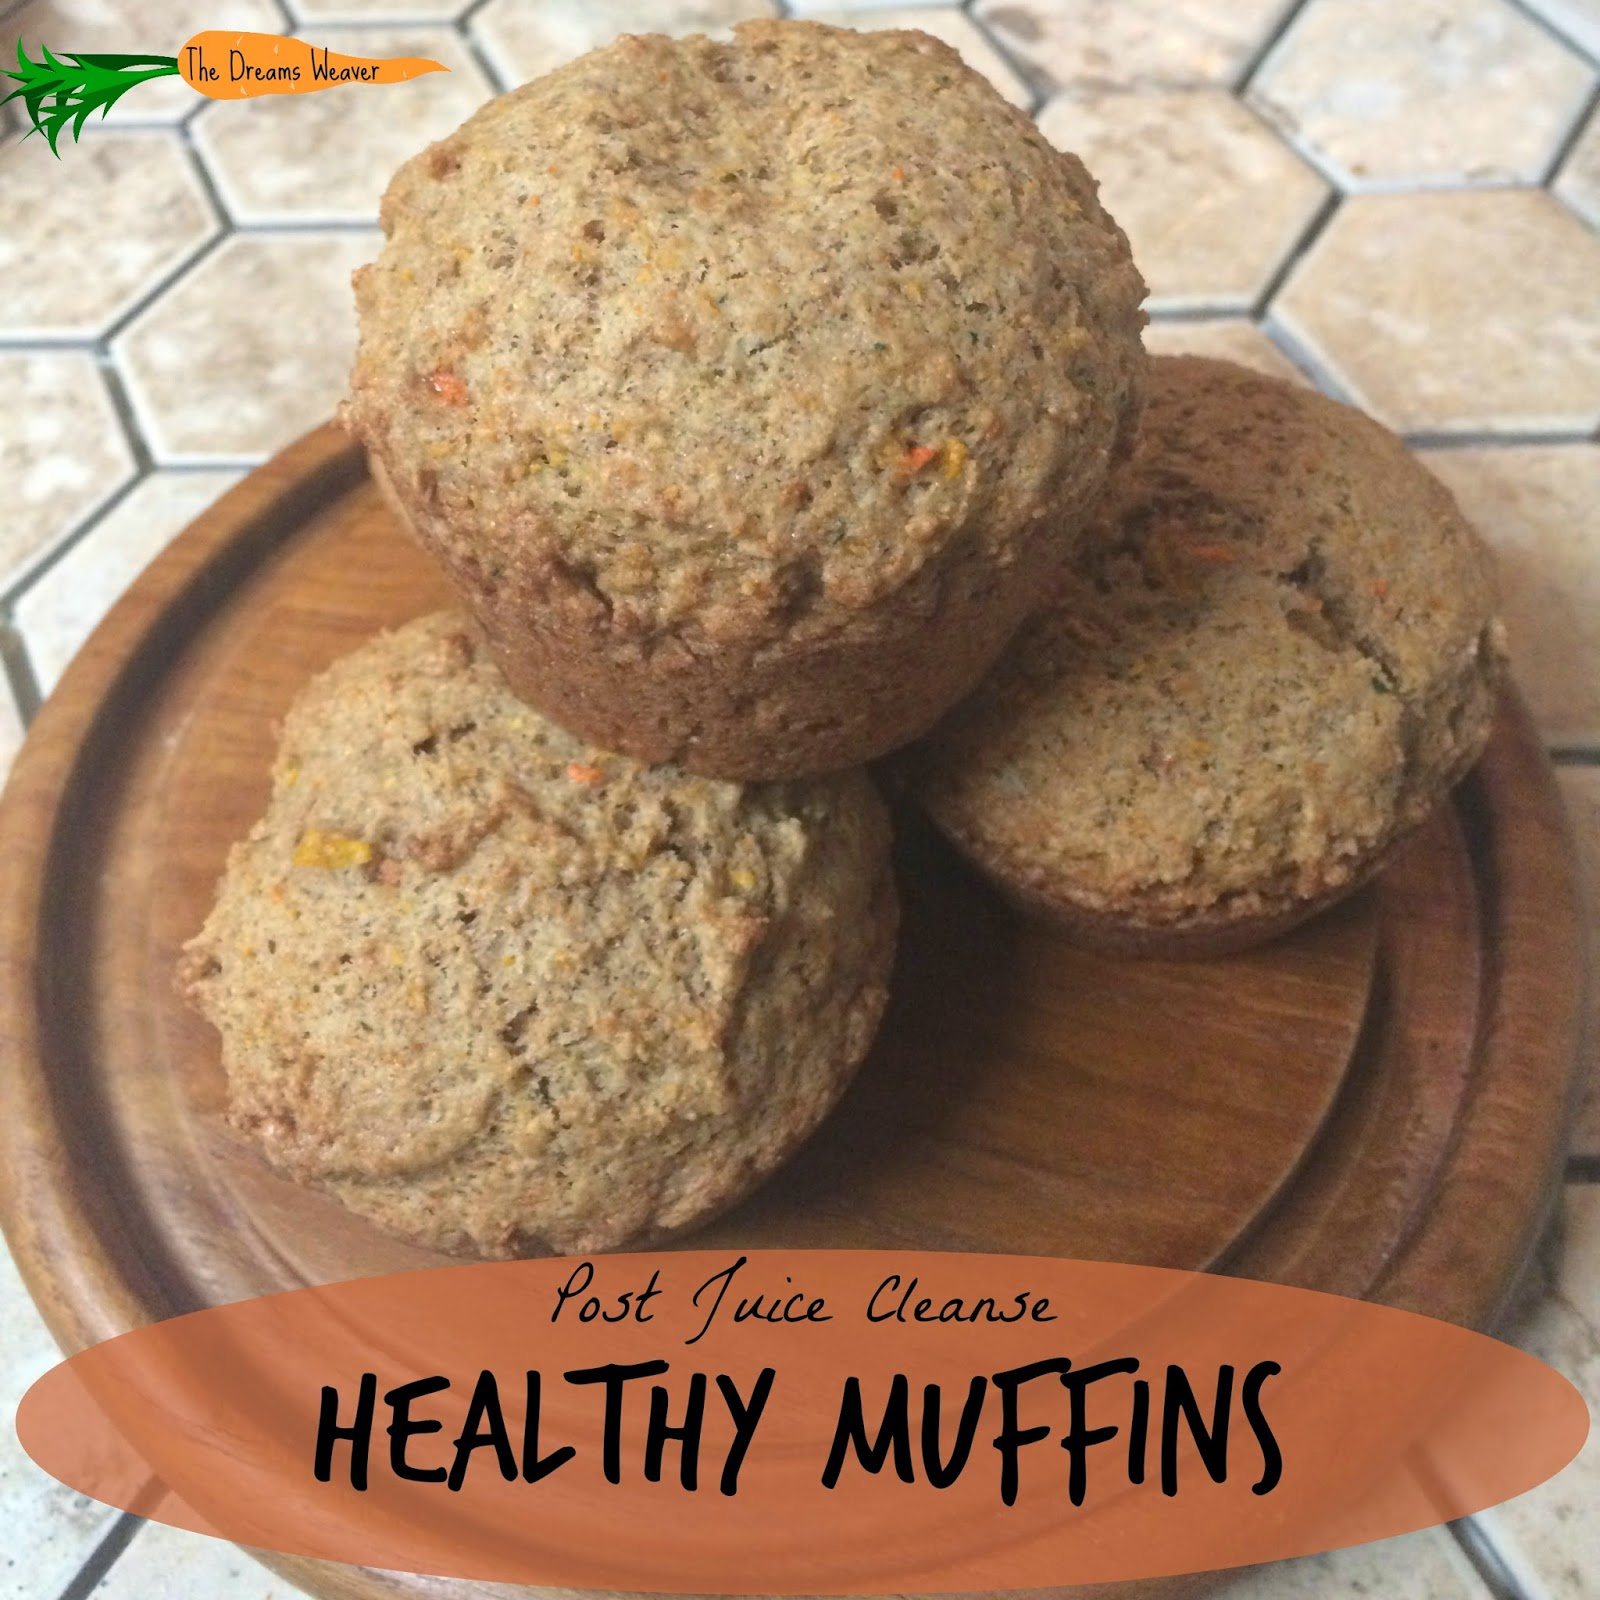 Post Juice Cleanse Healthy Muffins